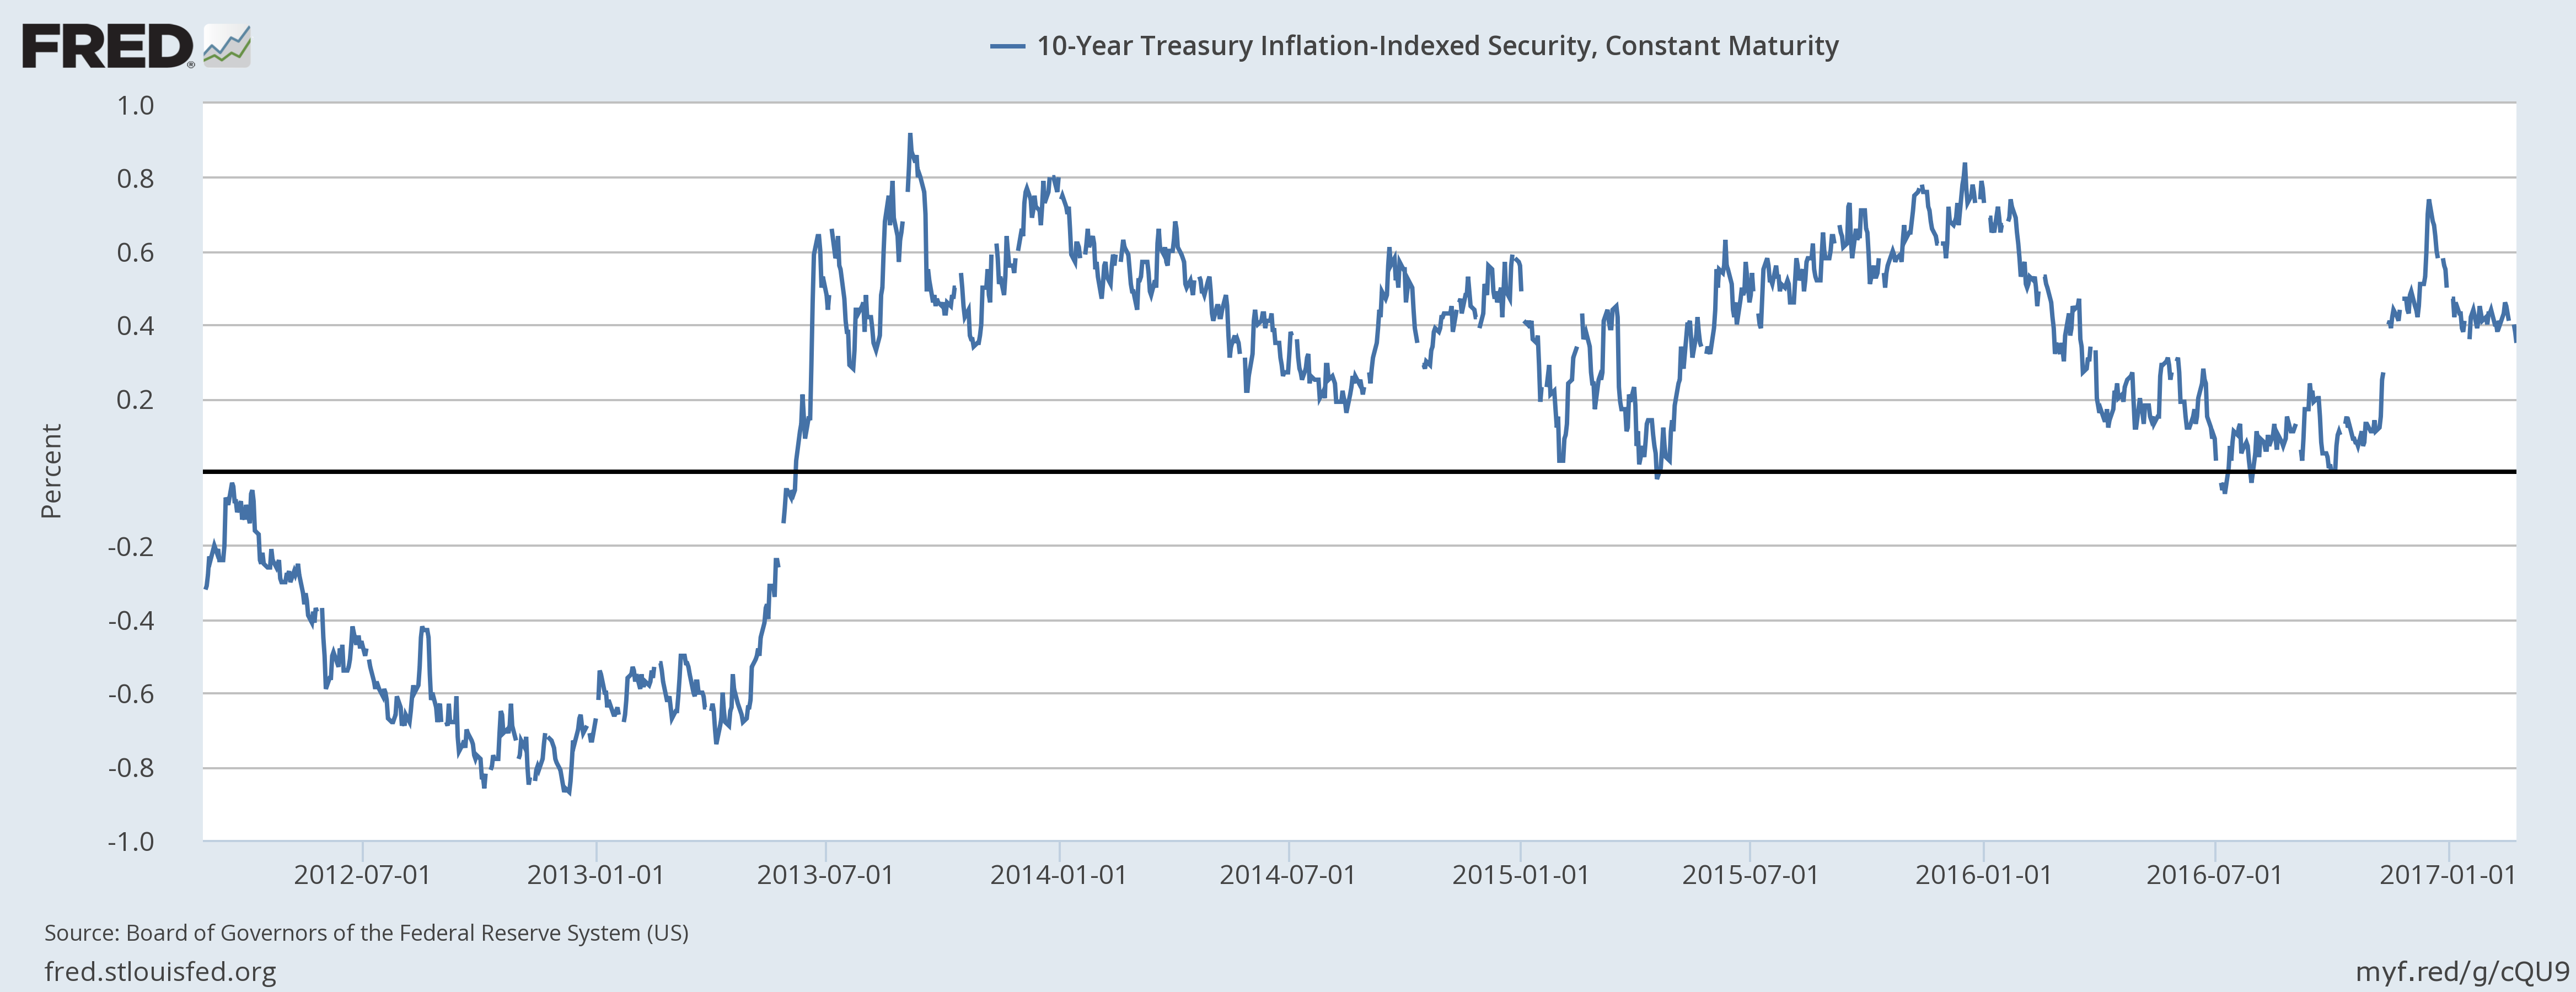 10-Year Treasury Inflation-Indexed Security 2012-2017